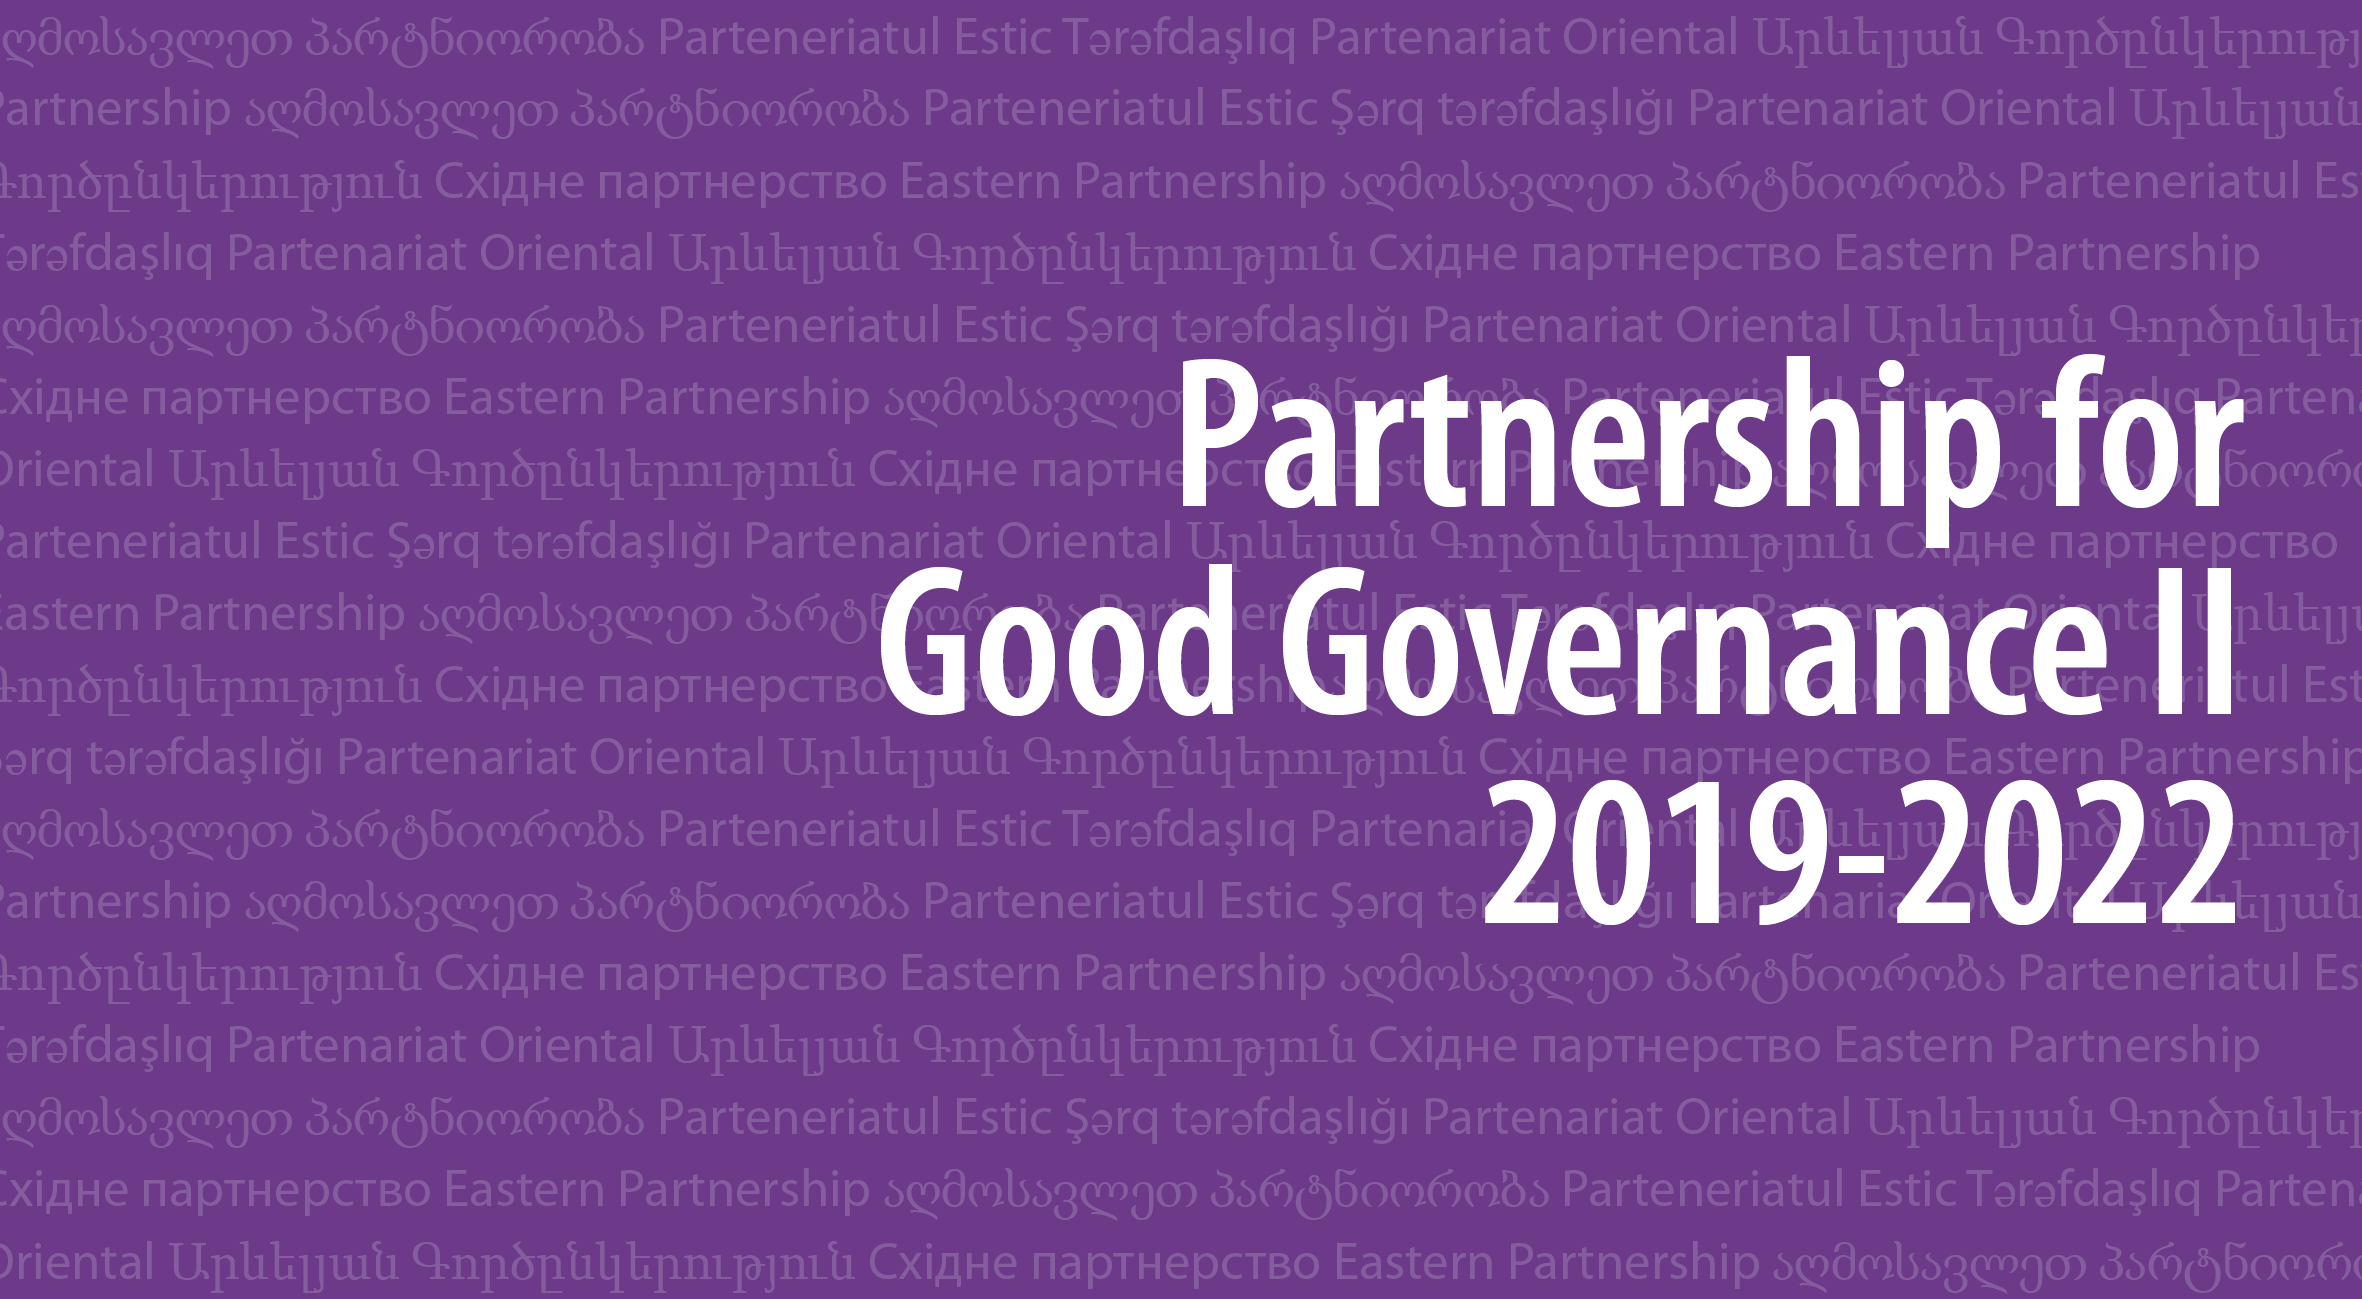 Partnership for Good Governance (Phase II)